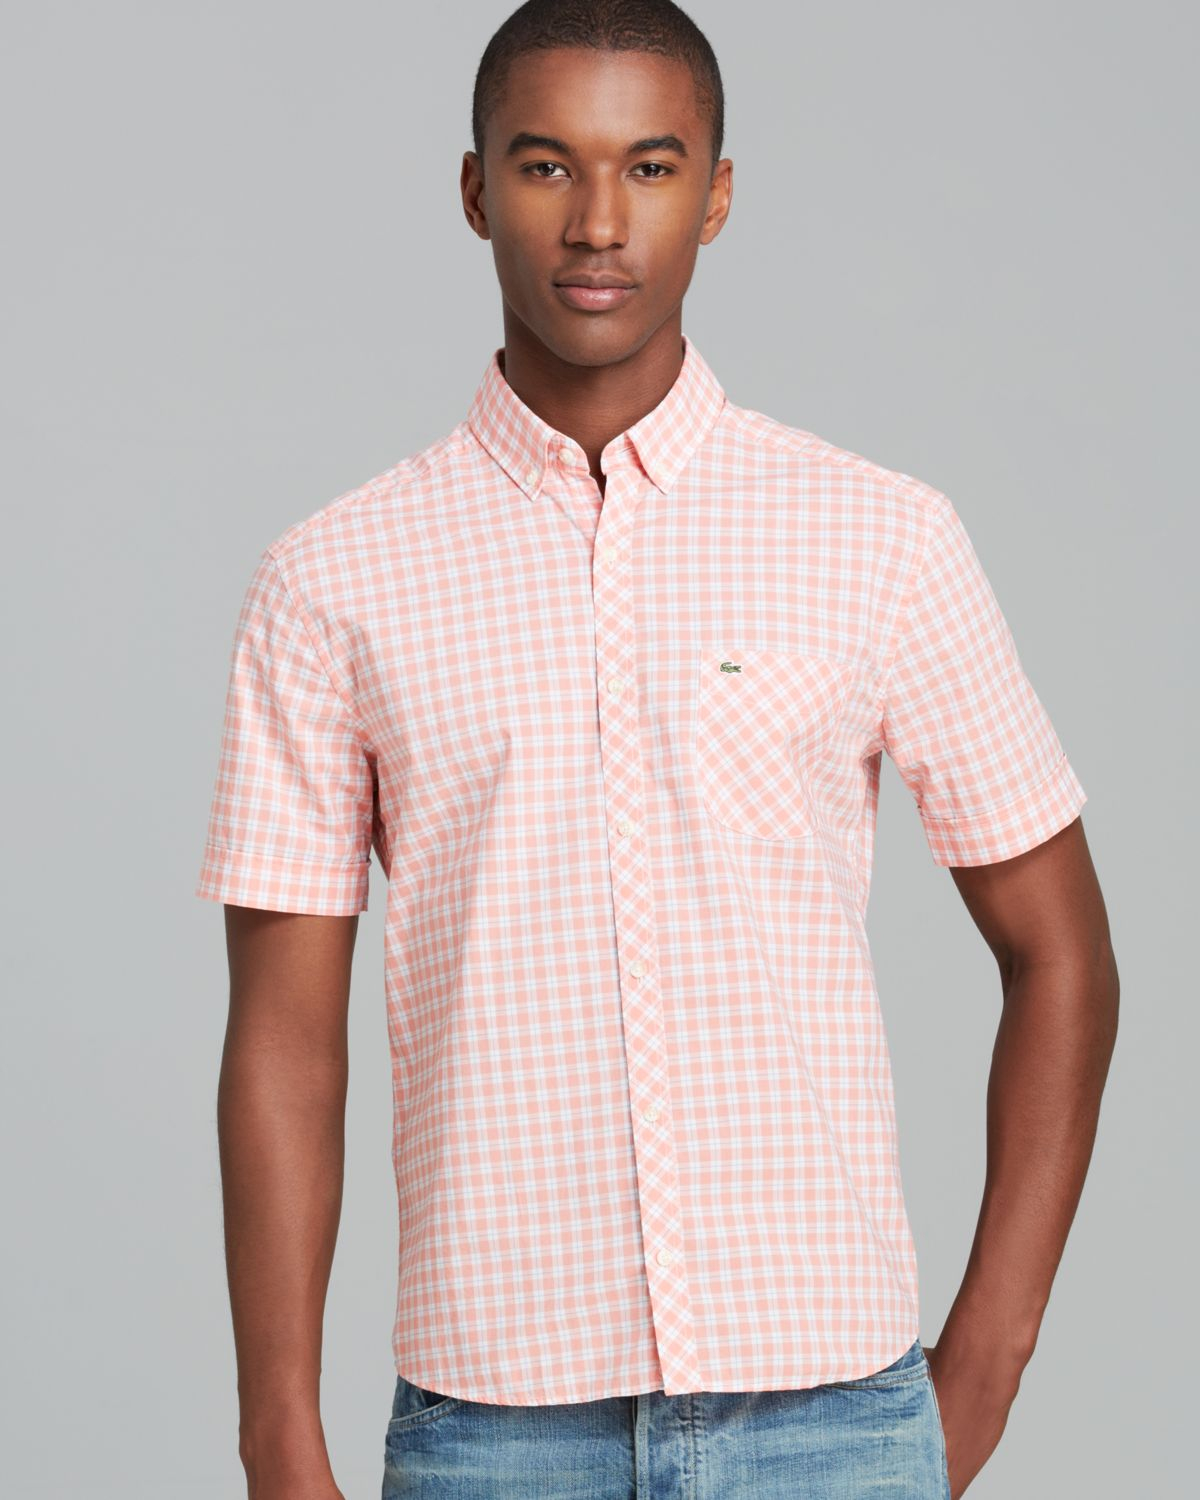 Lacoste Check Short Sleeve Sport Shirt Regular Fit In Pink